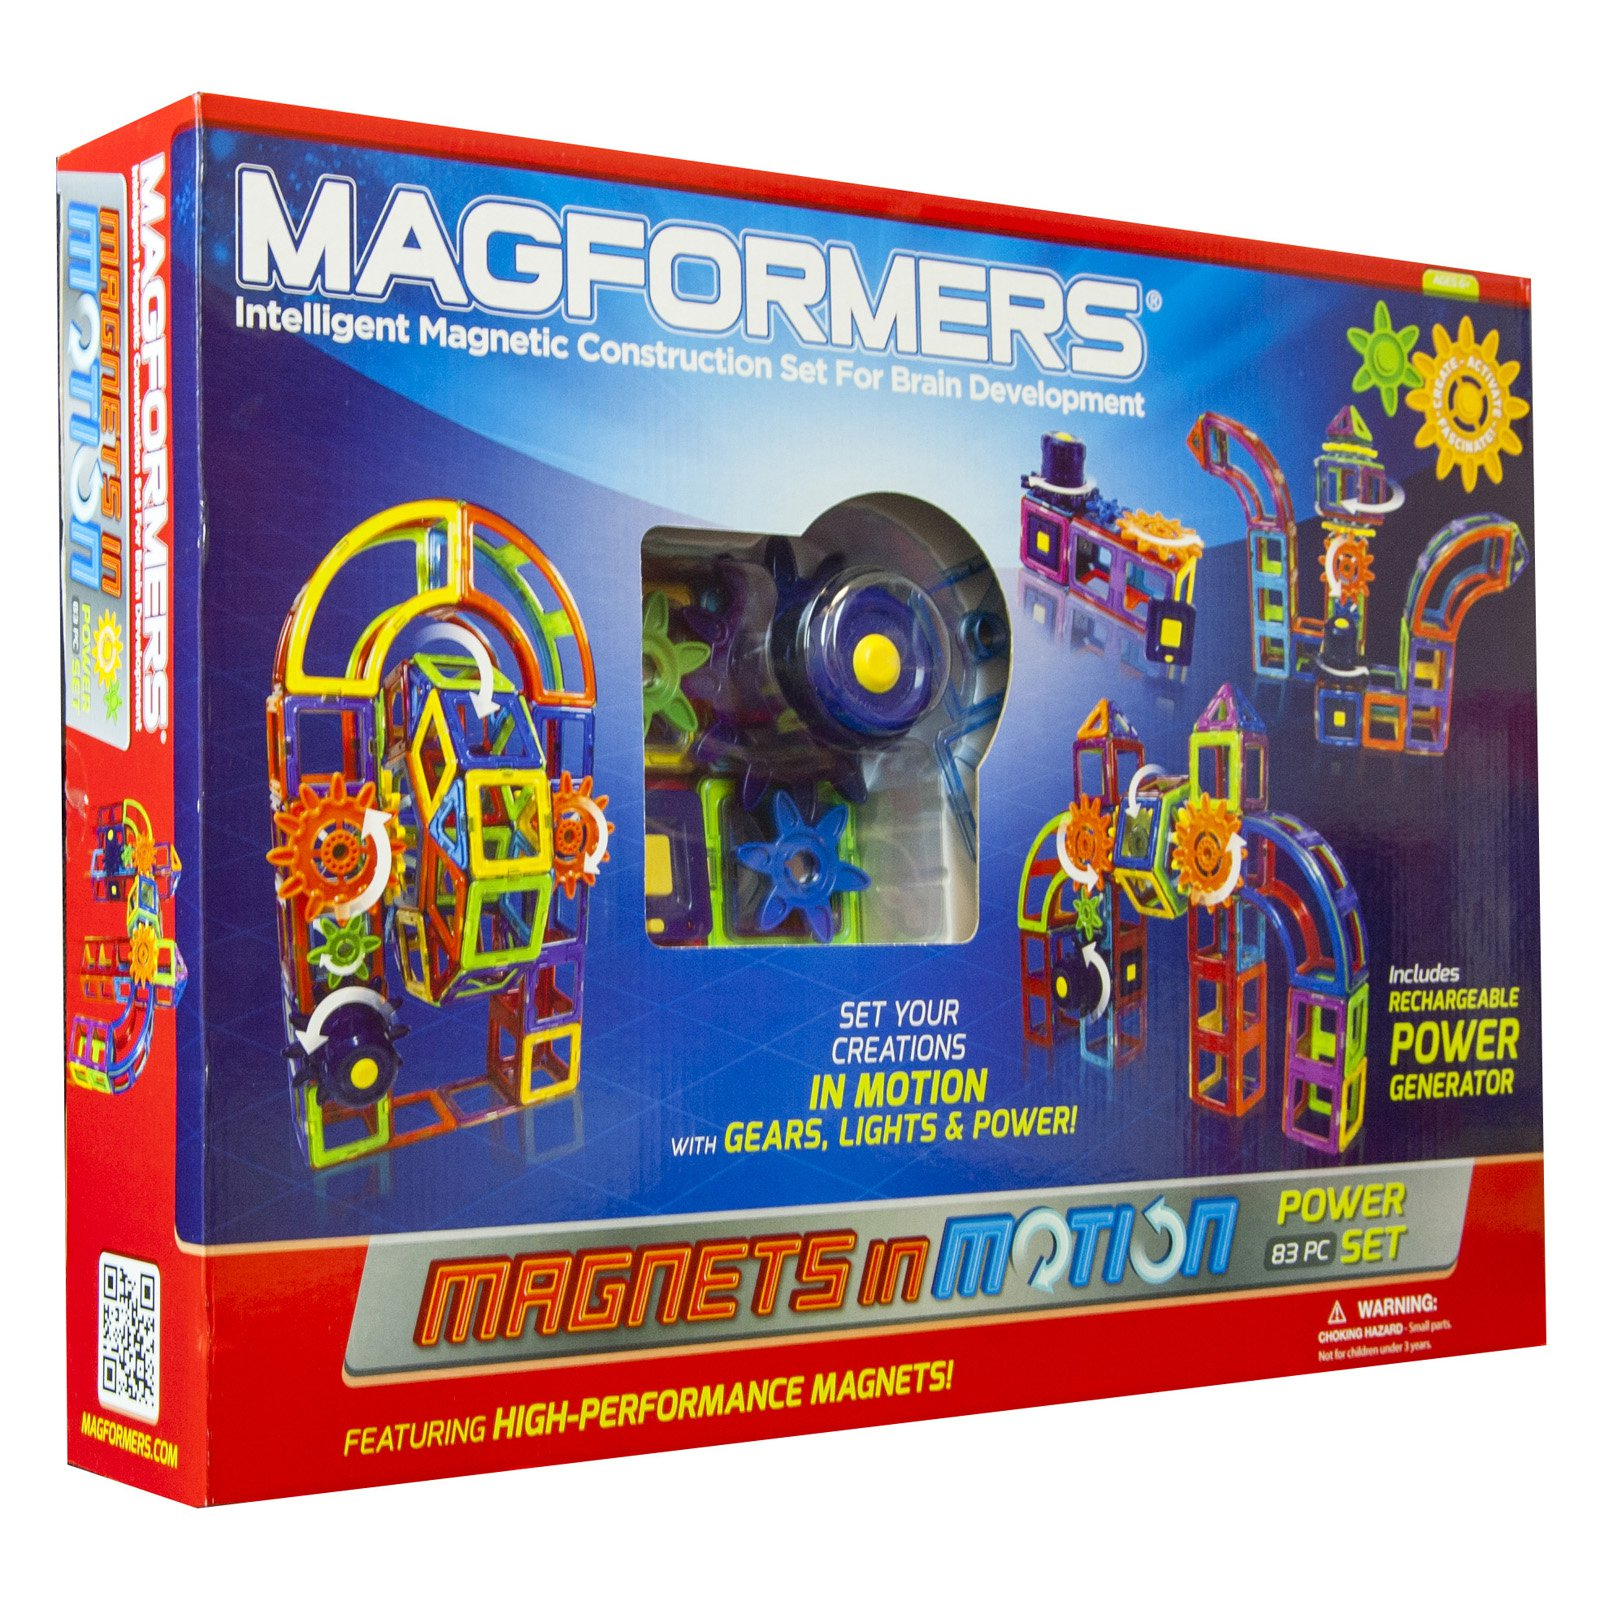 Magformers Magnets in Motion Power 83-Piece Magnetic Construction Set